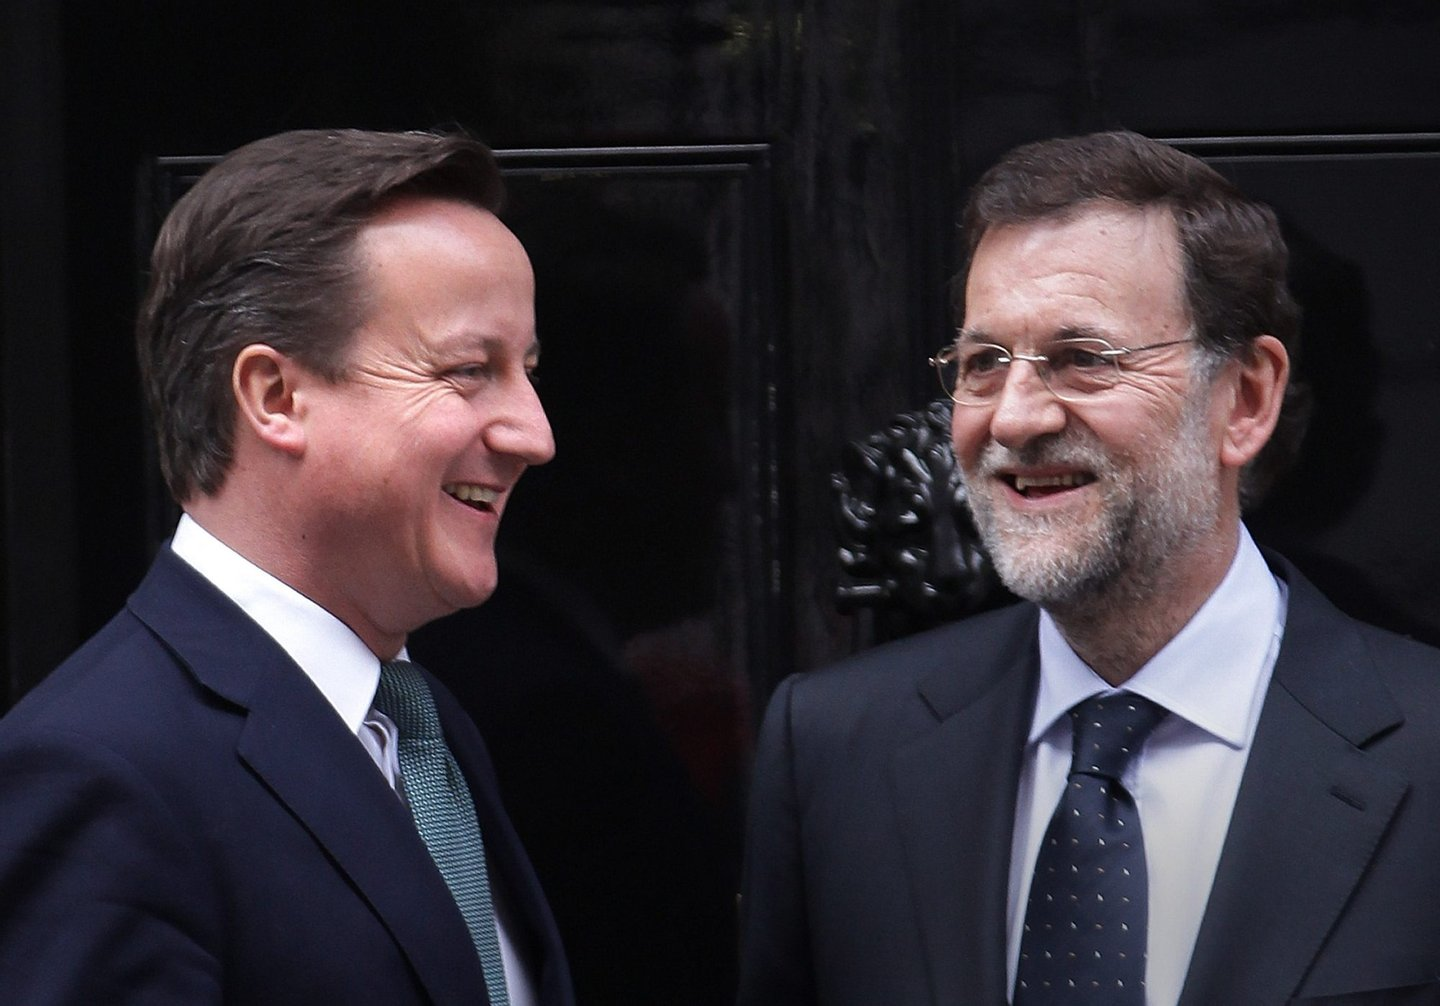 LONDON, ENGLAND - FEBRUARY 21: Prime Minister David Cameron (L) meets with Spanish Prime Minister Mariano Rajoy at 10 Downing Street on February 21, 2012 in London, England. Mr Rajoy is expected to raise the issue of Gibraltar with Mr Cameron. (Photo by Peter Macdiarmid/Getty Images)